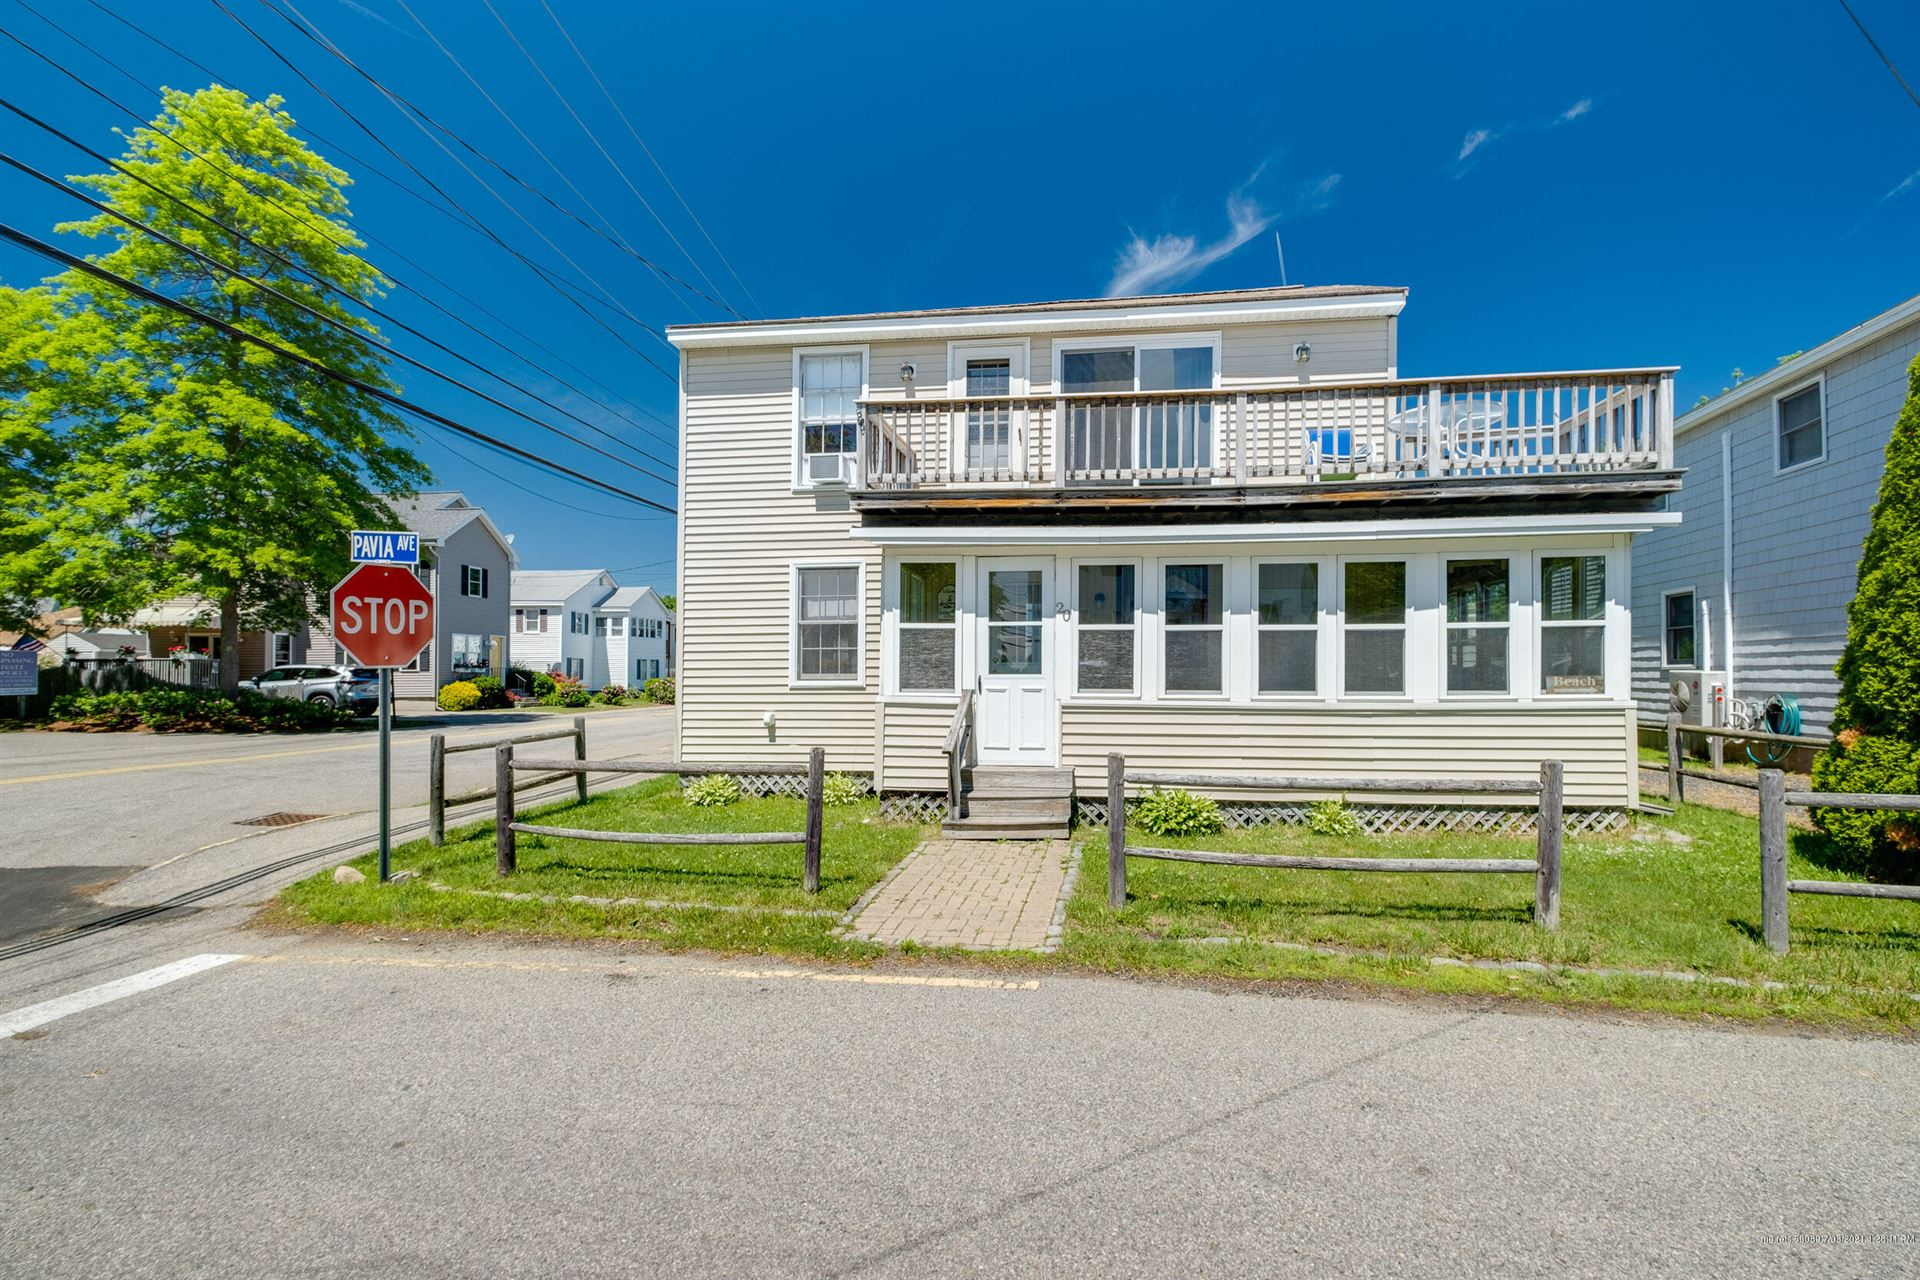 Photo of 20 Pavia Avenue, Old Orchard Beach, ME 04064 (MLS # 1495907)